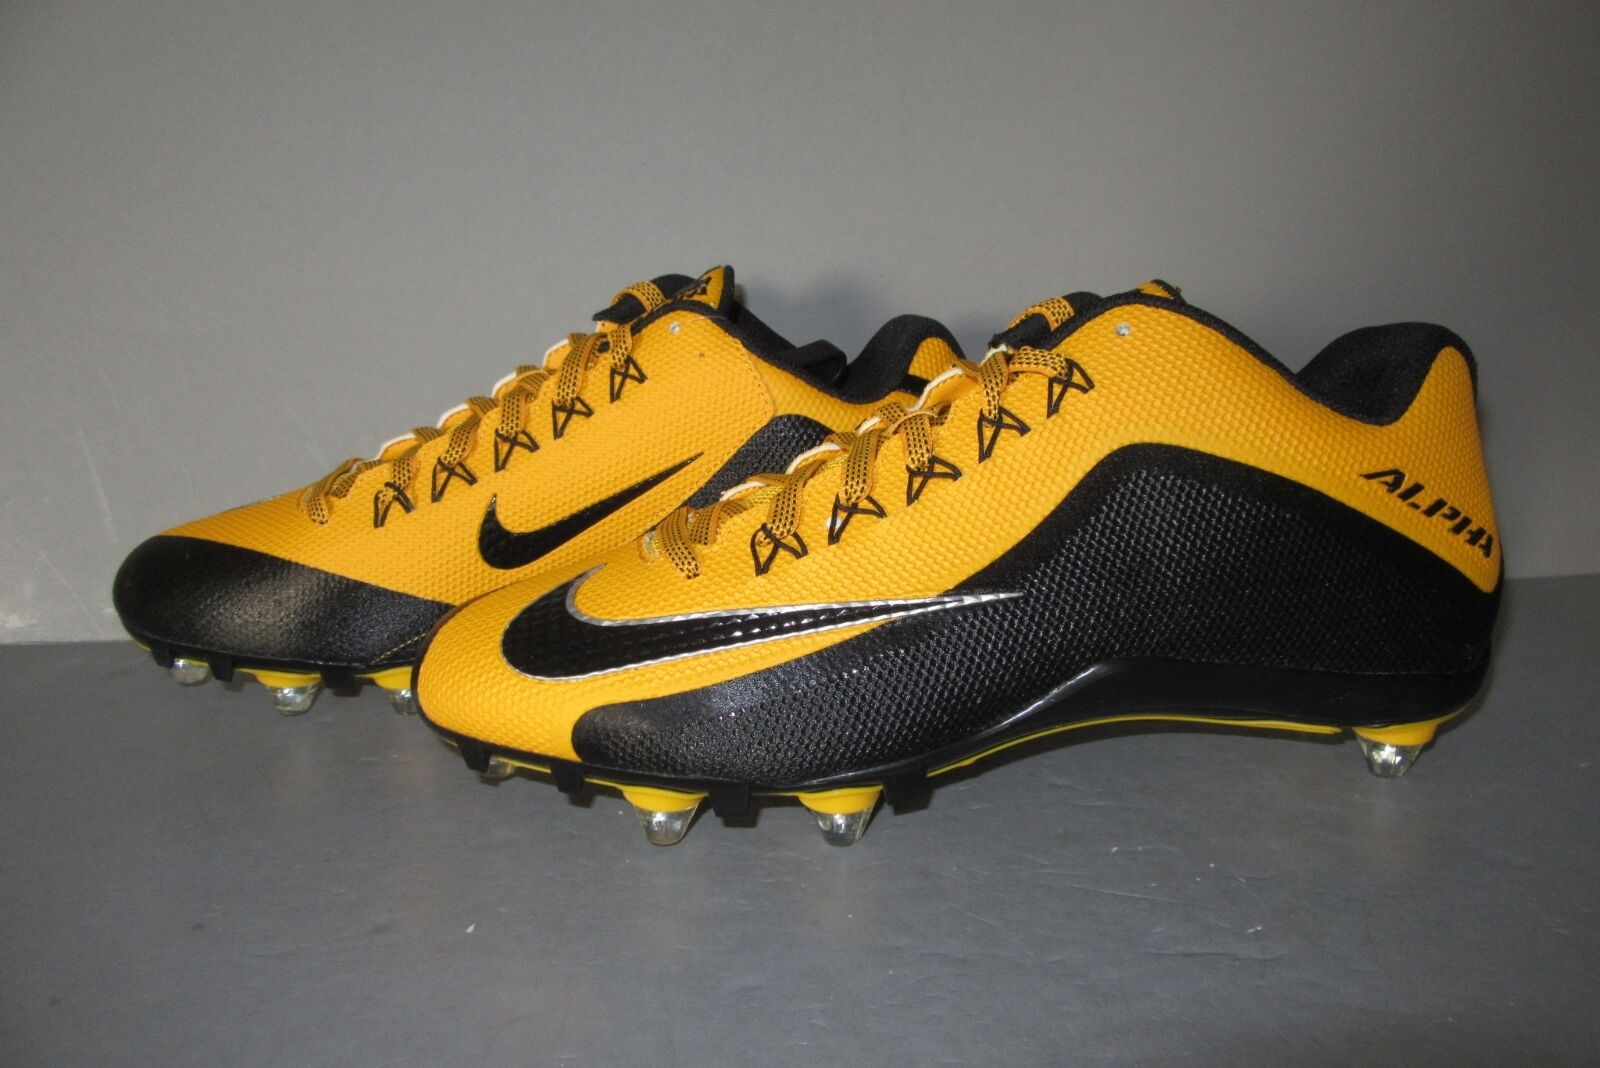 Nike Alpha Pro 2 D PF Football Detachable Cleats/Shoes Black/Gold Size 12